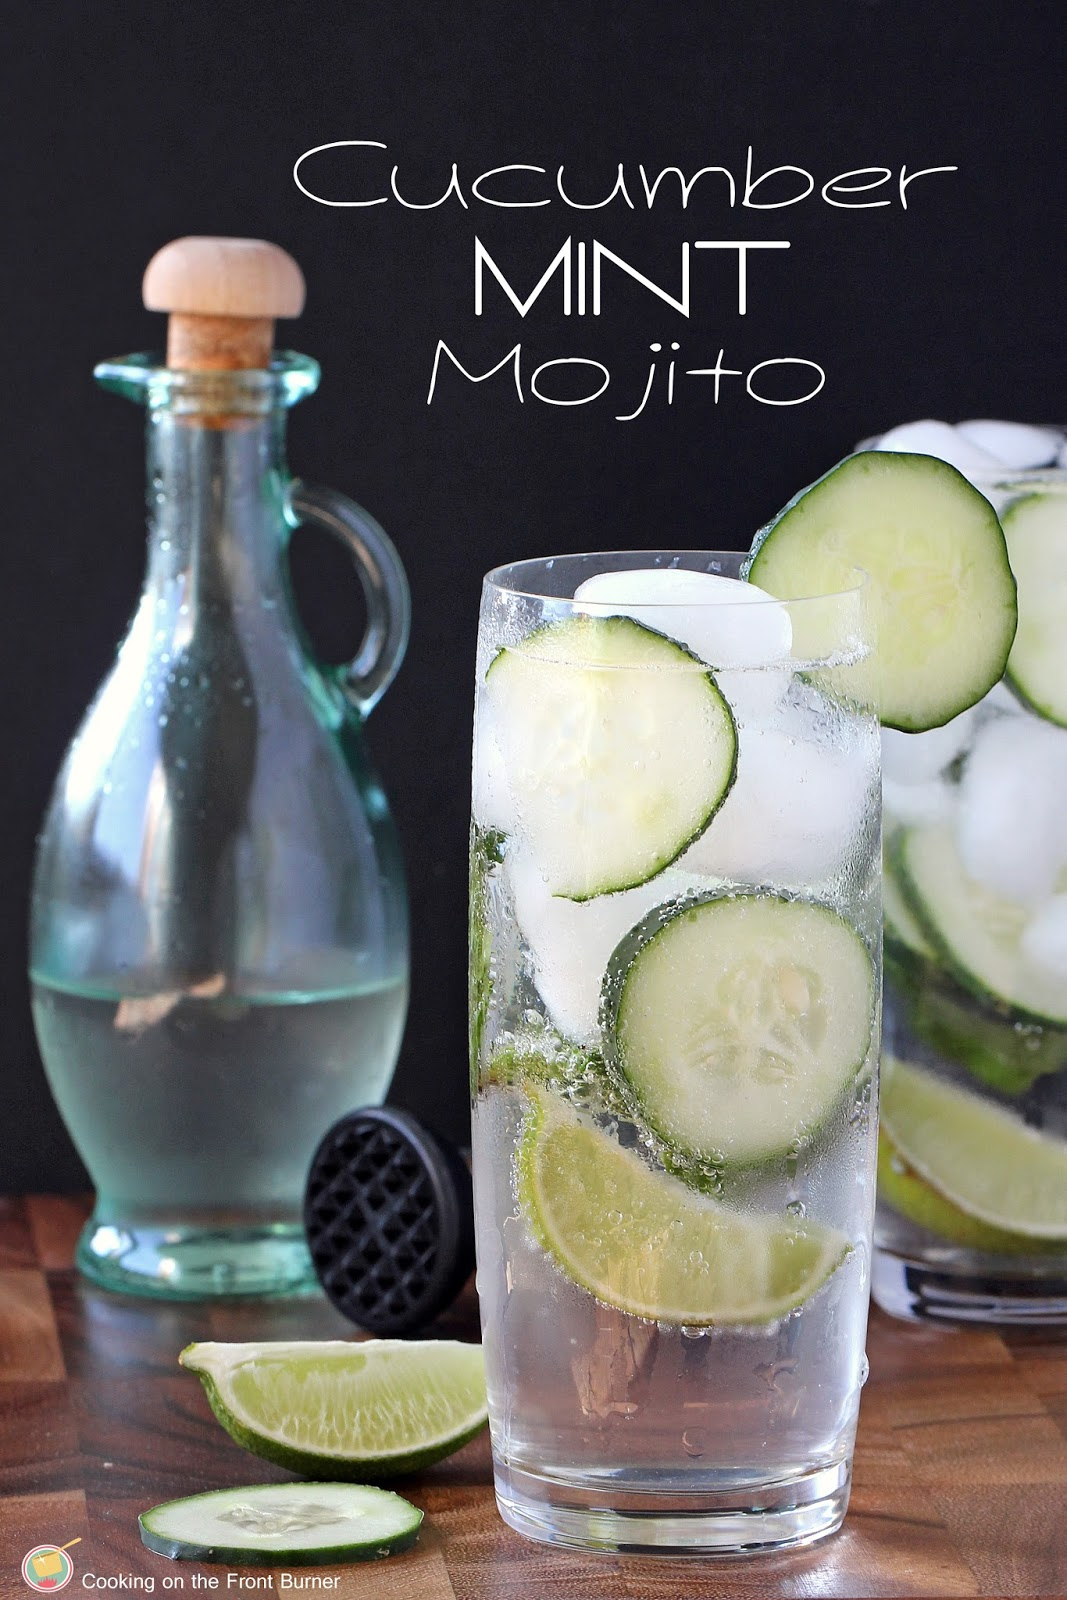 Cool down with this Cucumber Mojito!